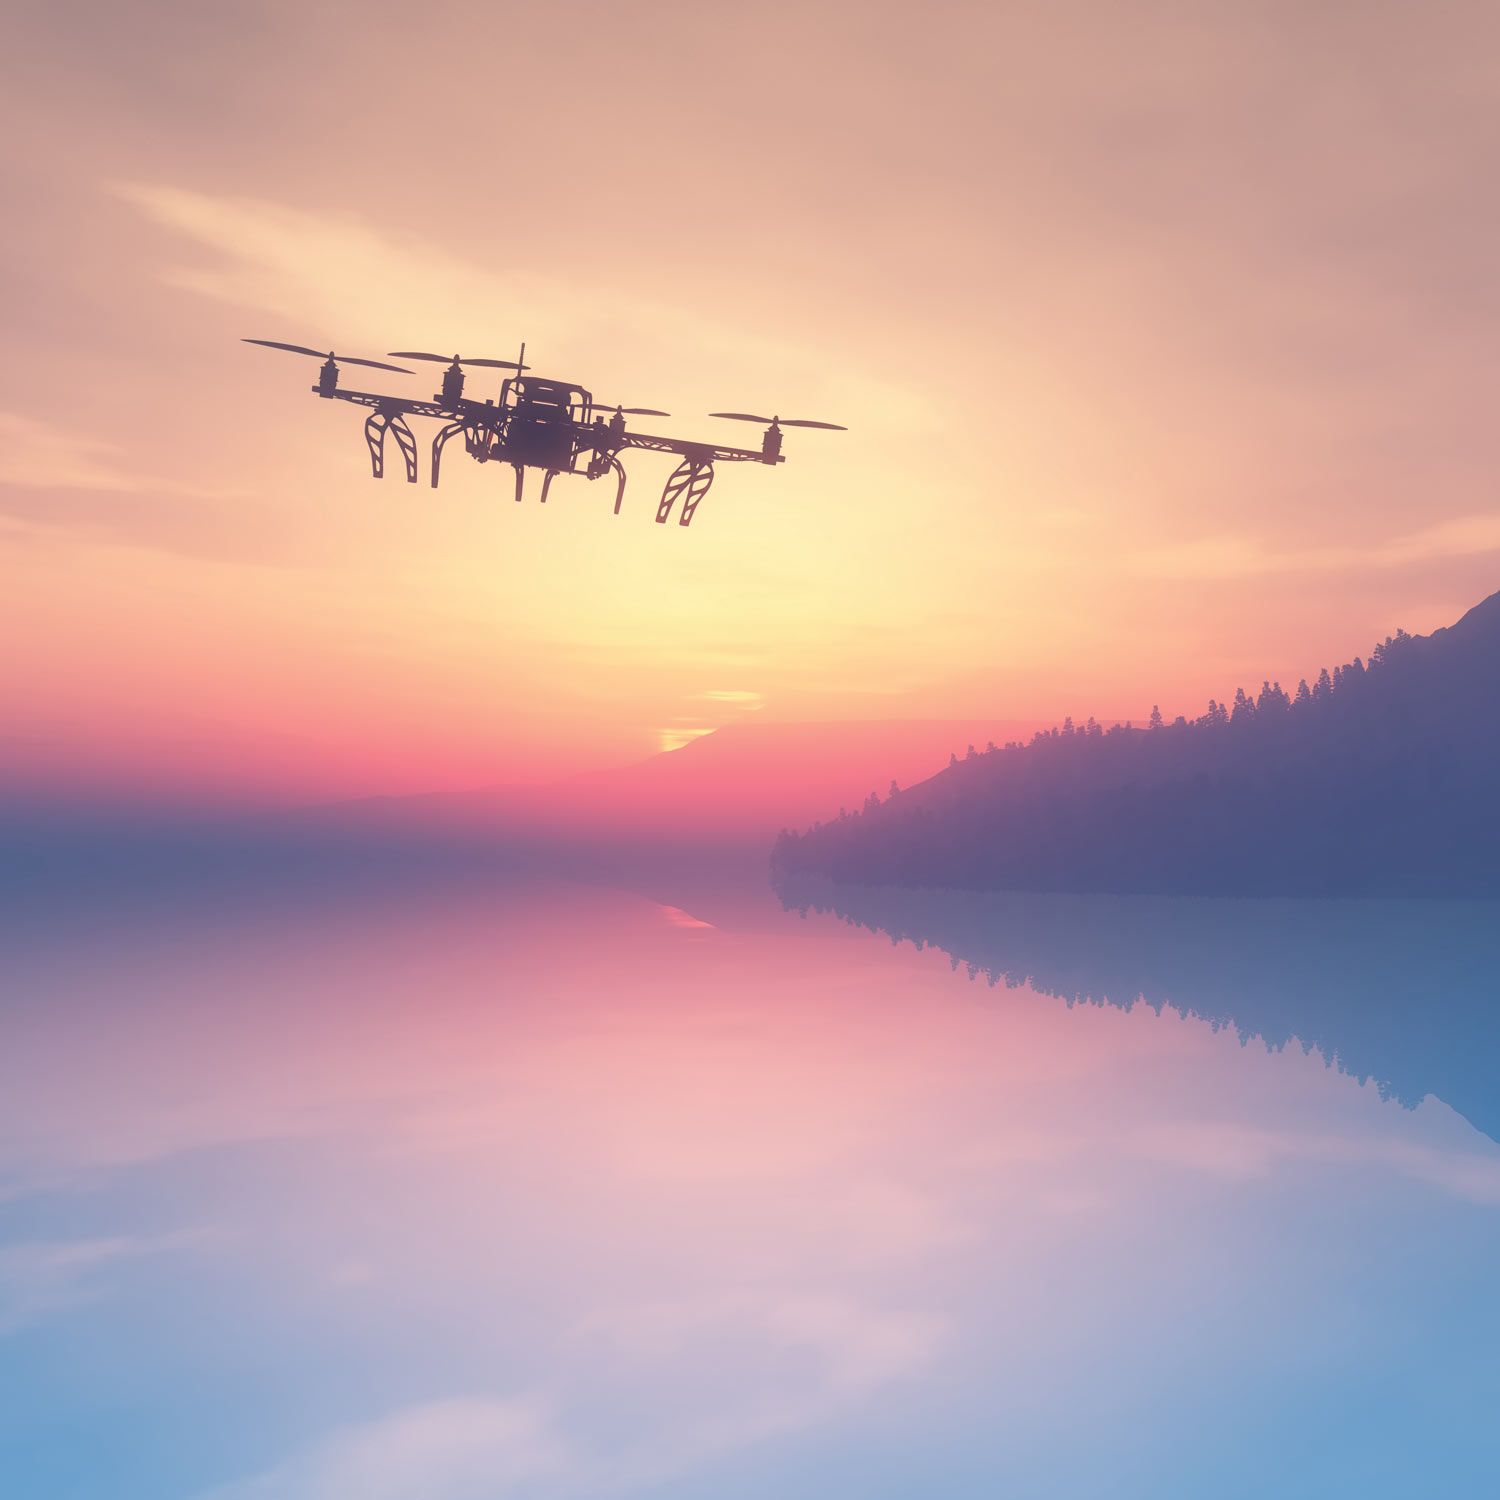 Content and Video Marketing with Inventive's Drone Photography and Videography